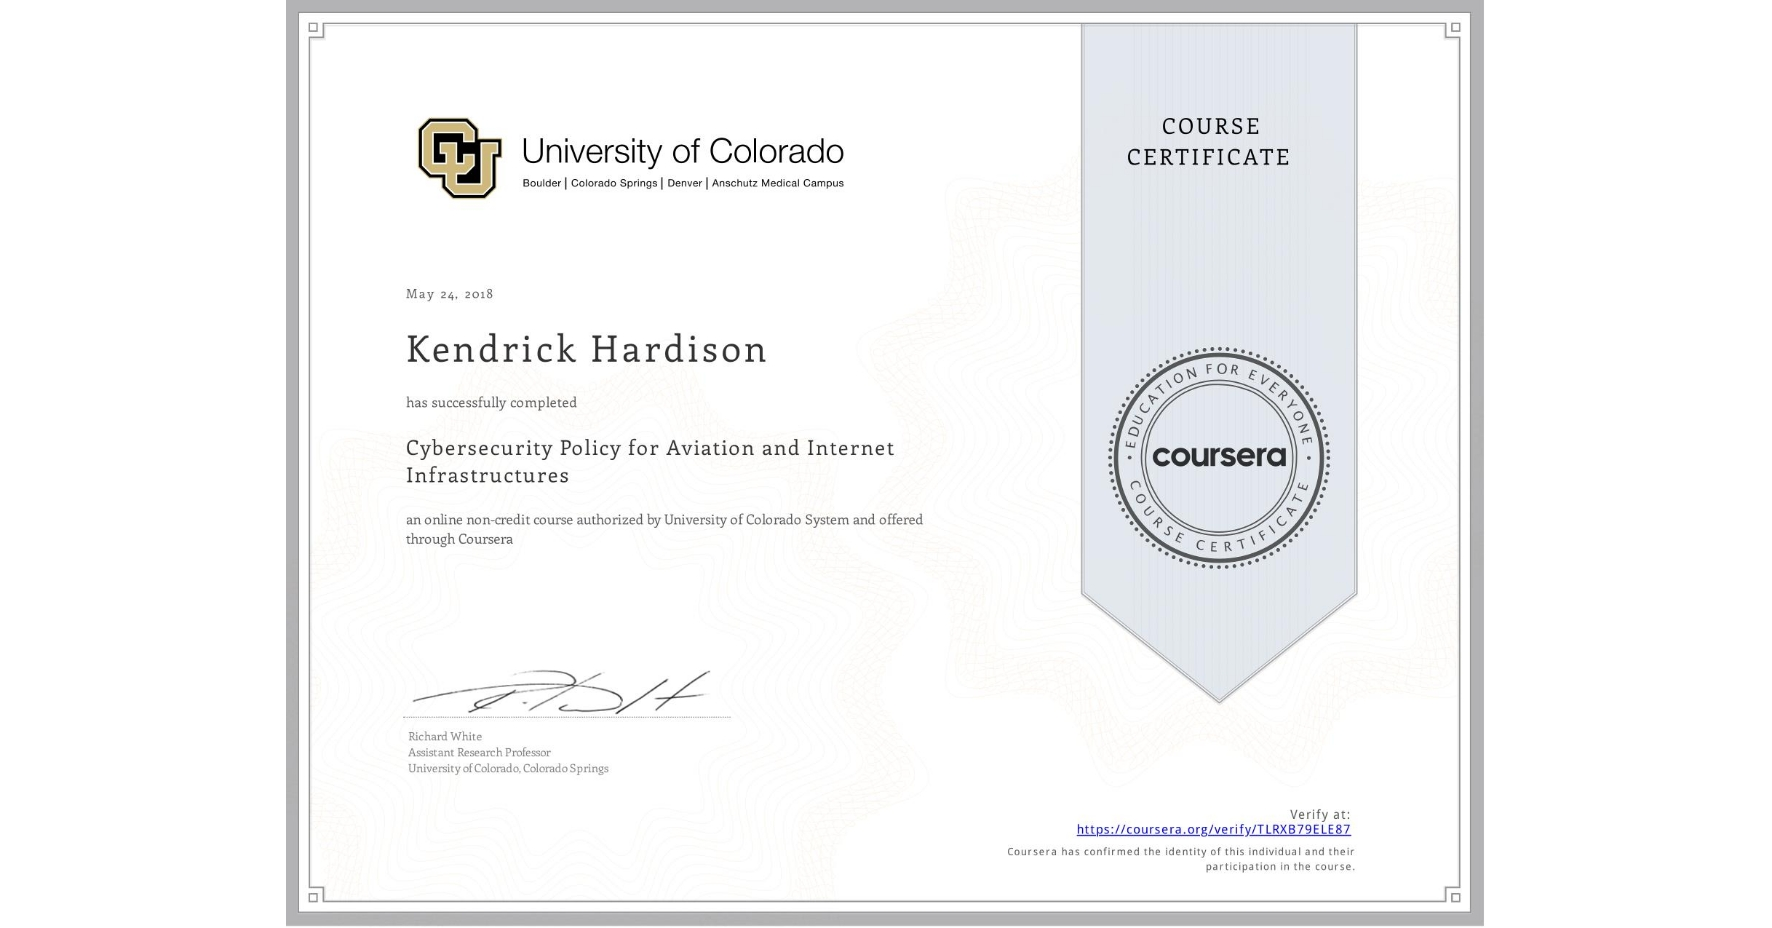 View certificate for Kendrick Hardison, Cybersecurity Policy for Aviation and Internet Infrastructures, an online non-credit course authorized by University of Colorado System and offered through Coursera